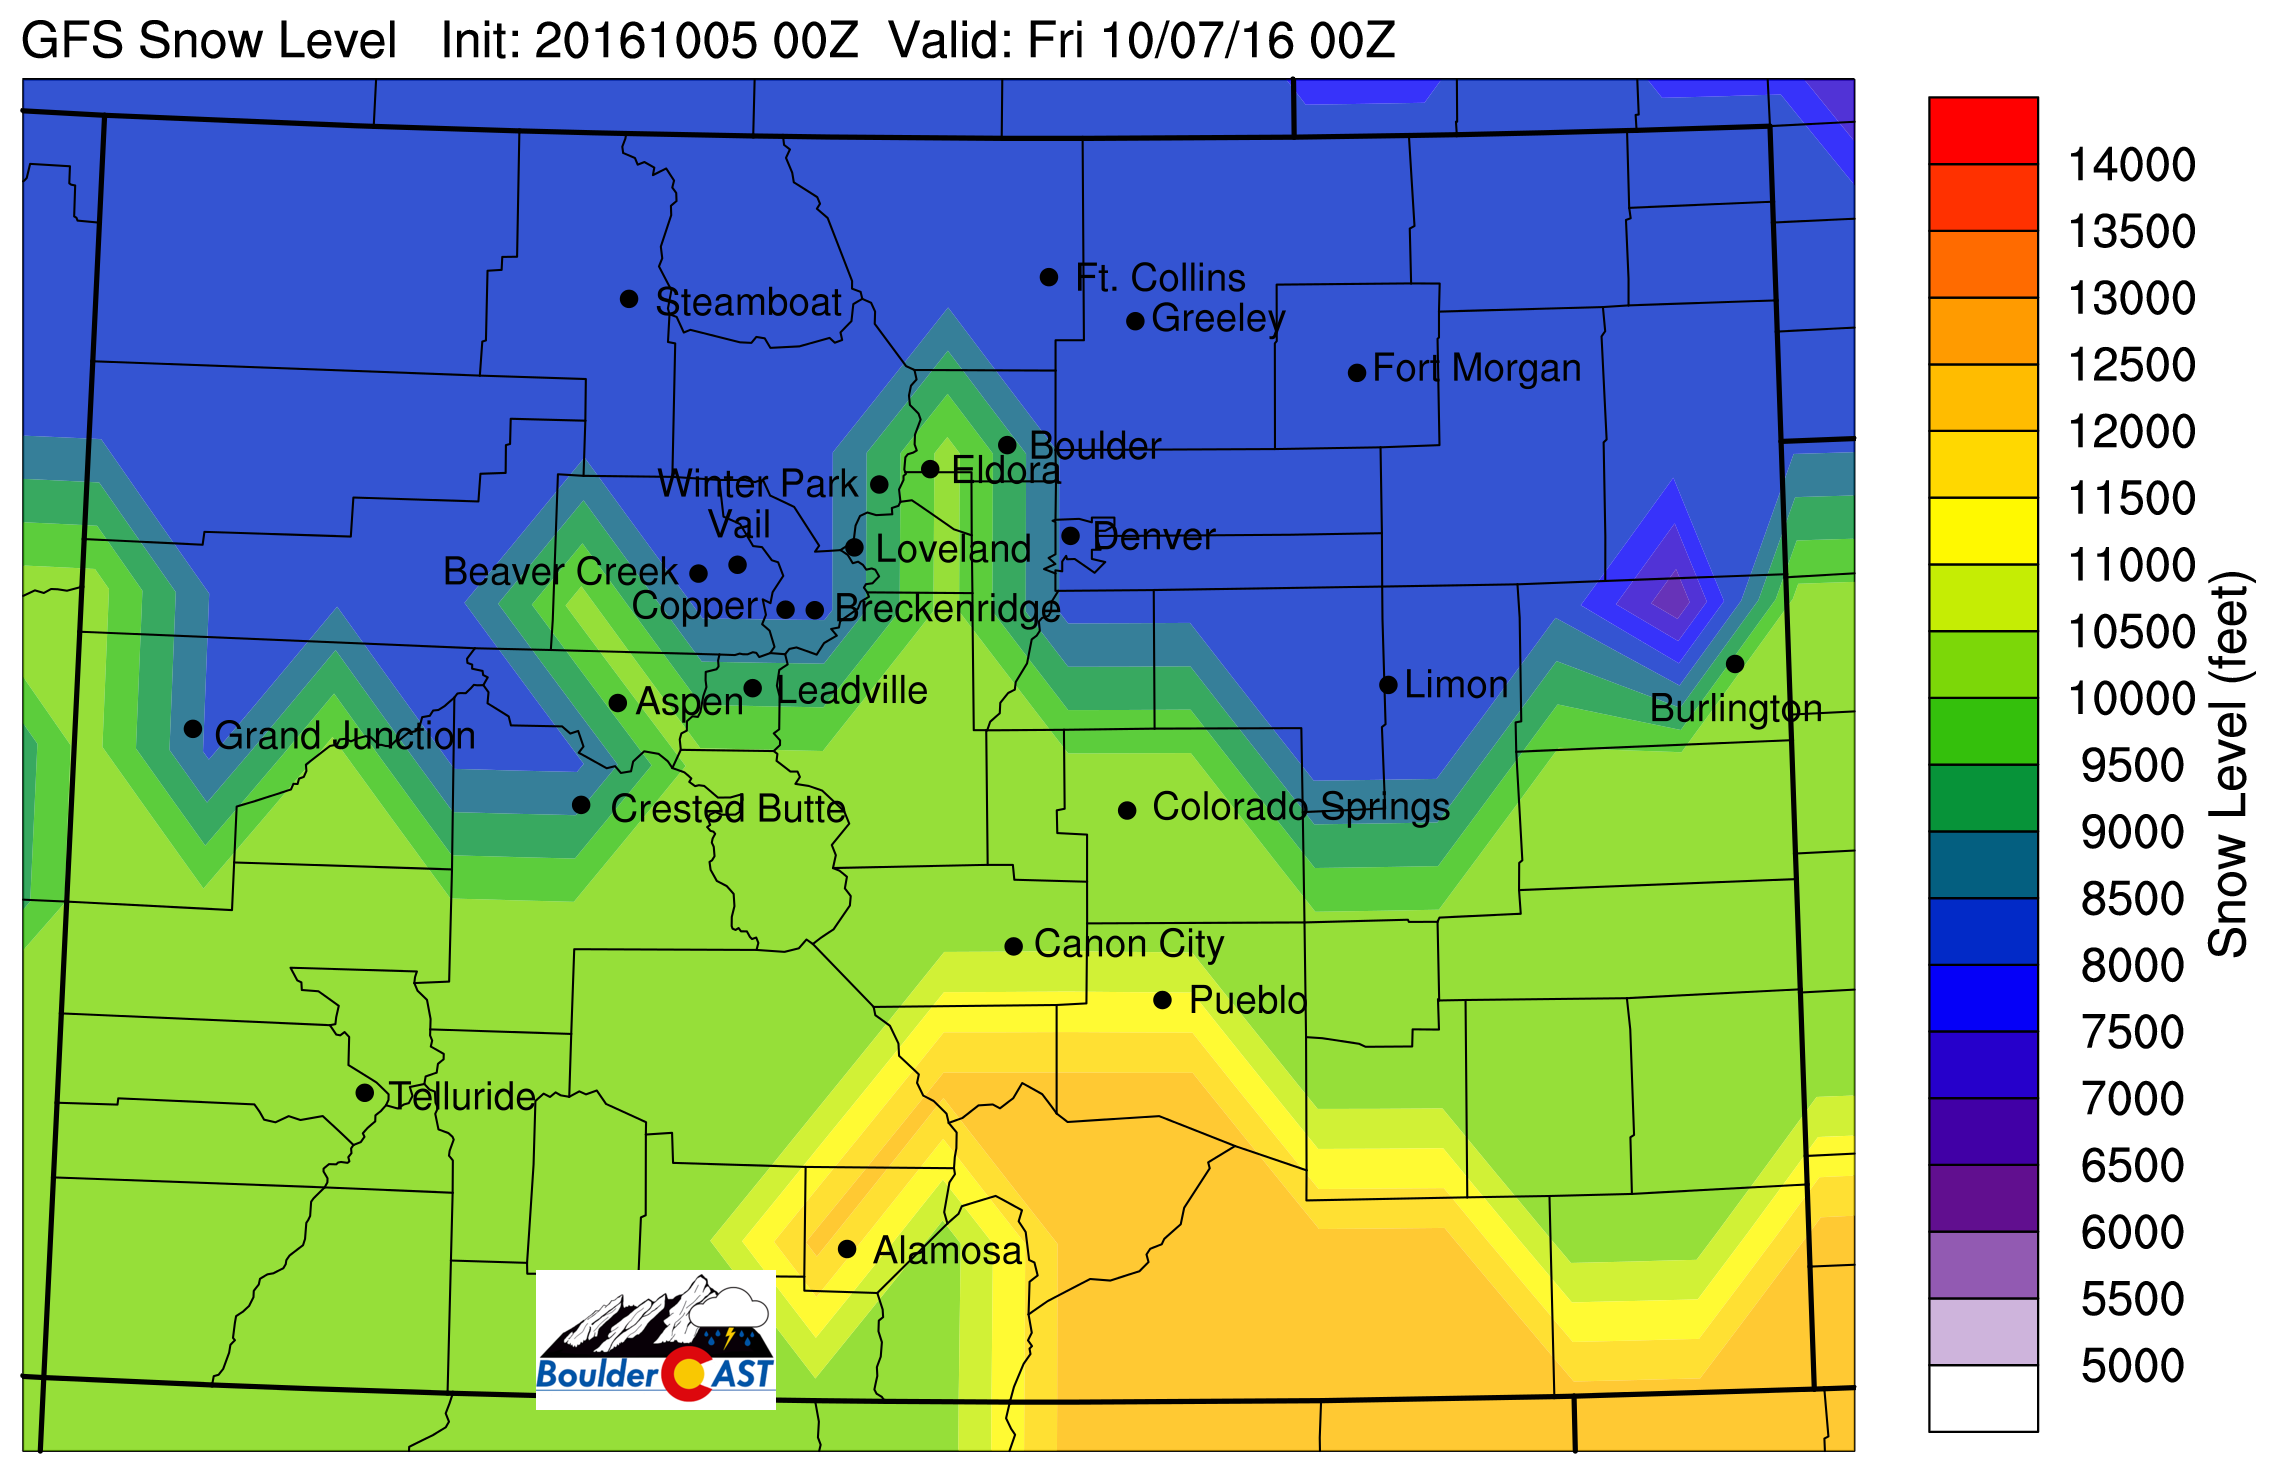 Forecast snow level for Thursday afternoon (using in-house algorithms and GFS model data)